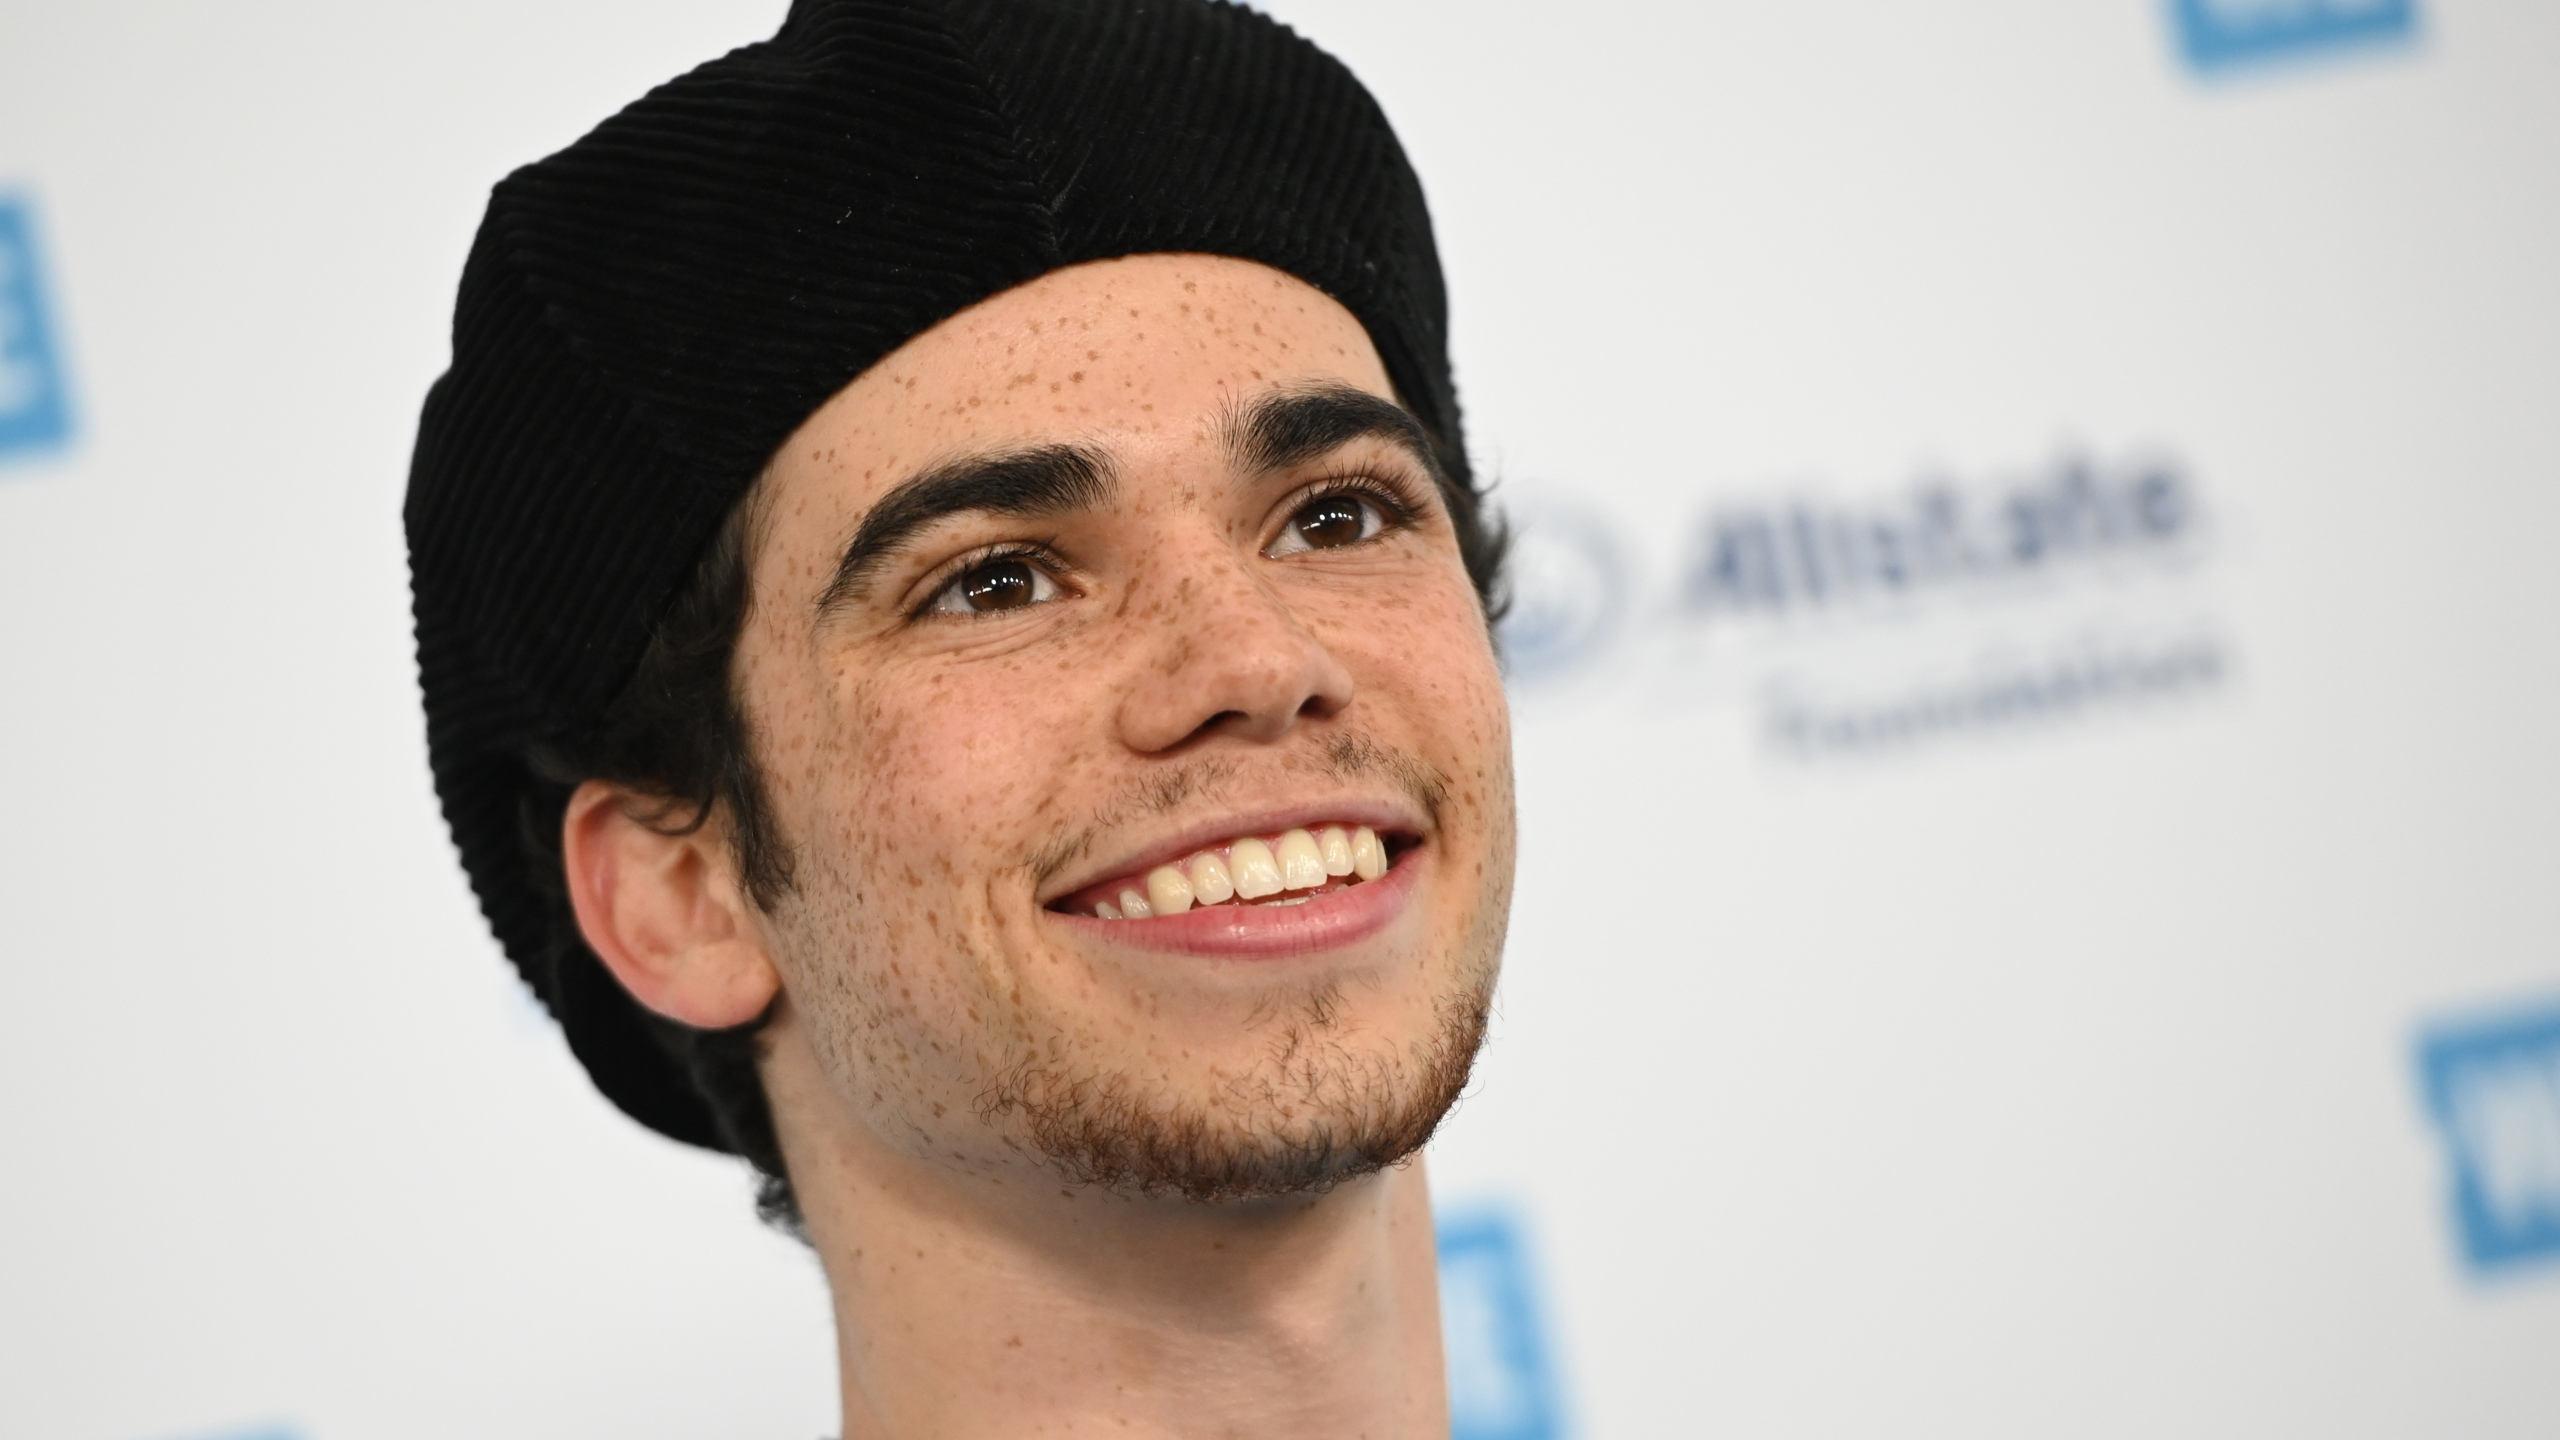 Actor Cameron Boyce arrives for WE Day California at the Forum in Inglewood on April 25, 2019. (Credit: ROBYN BECK/AFP/Getty Images)